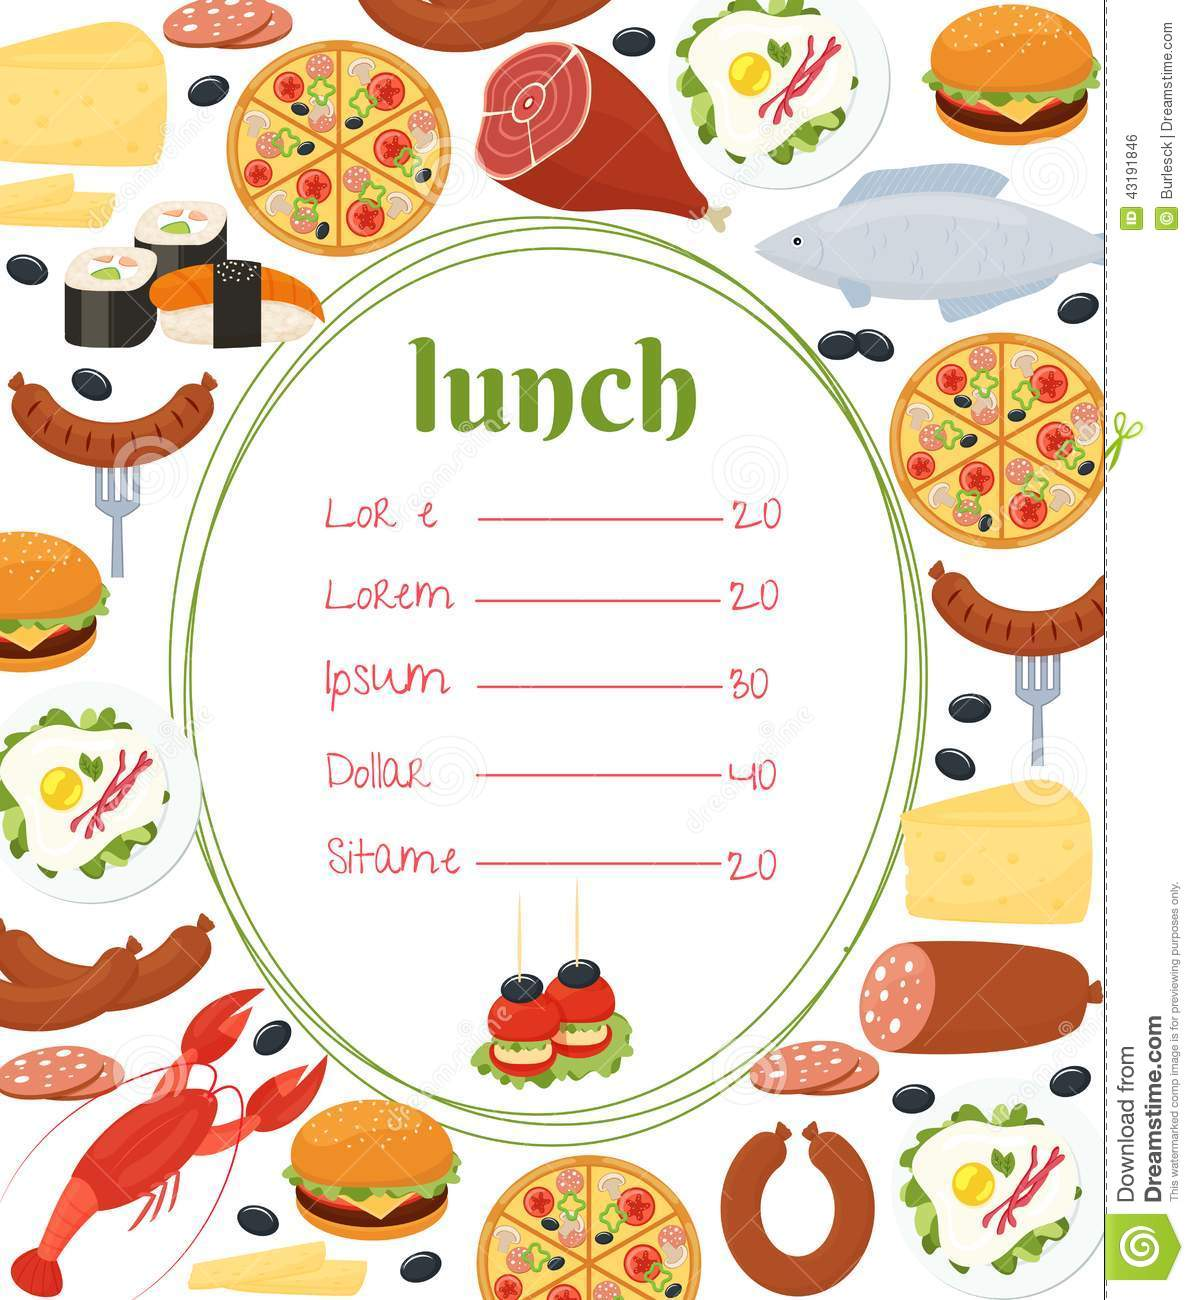 Lunch menu template stock vector illustration of cuisine for Max fish menu